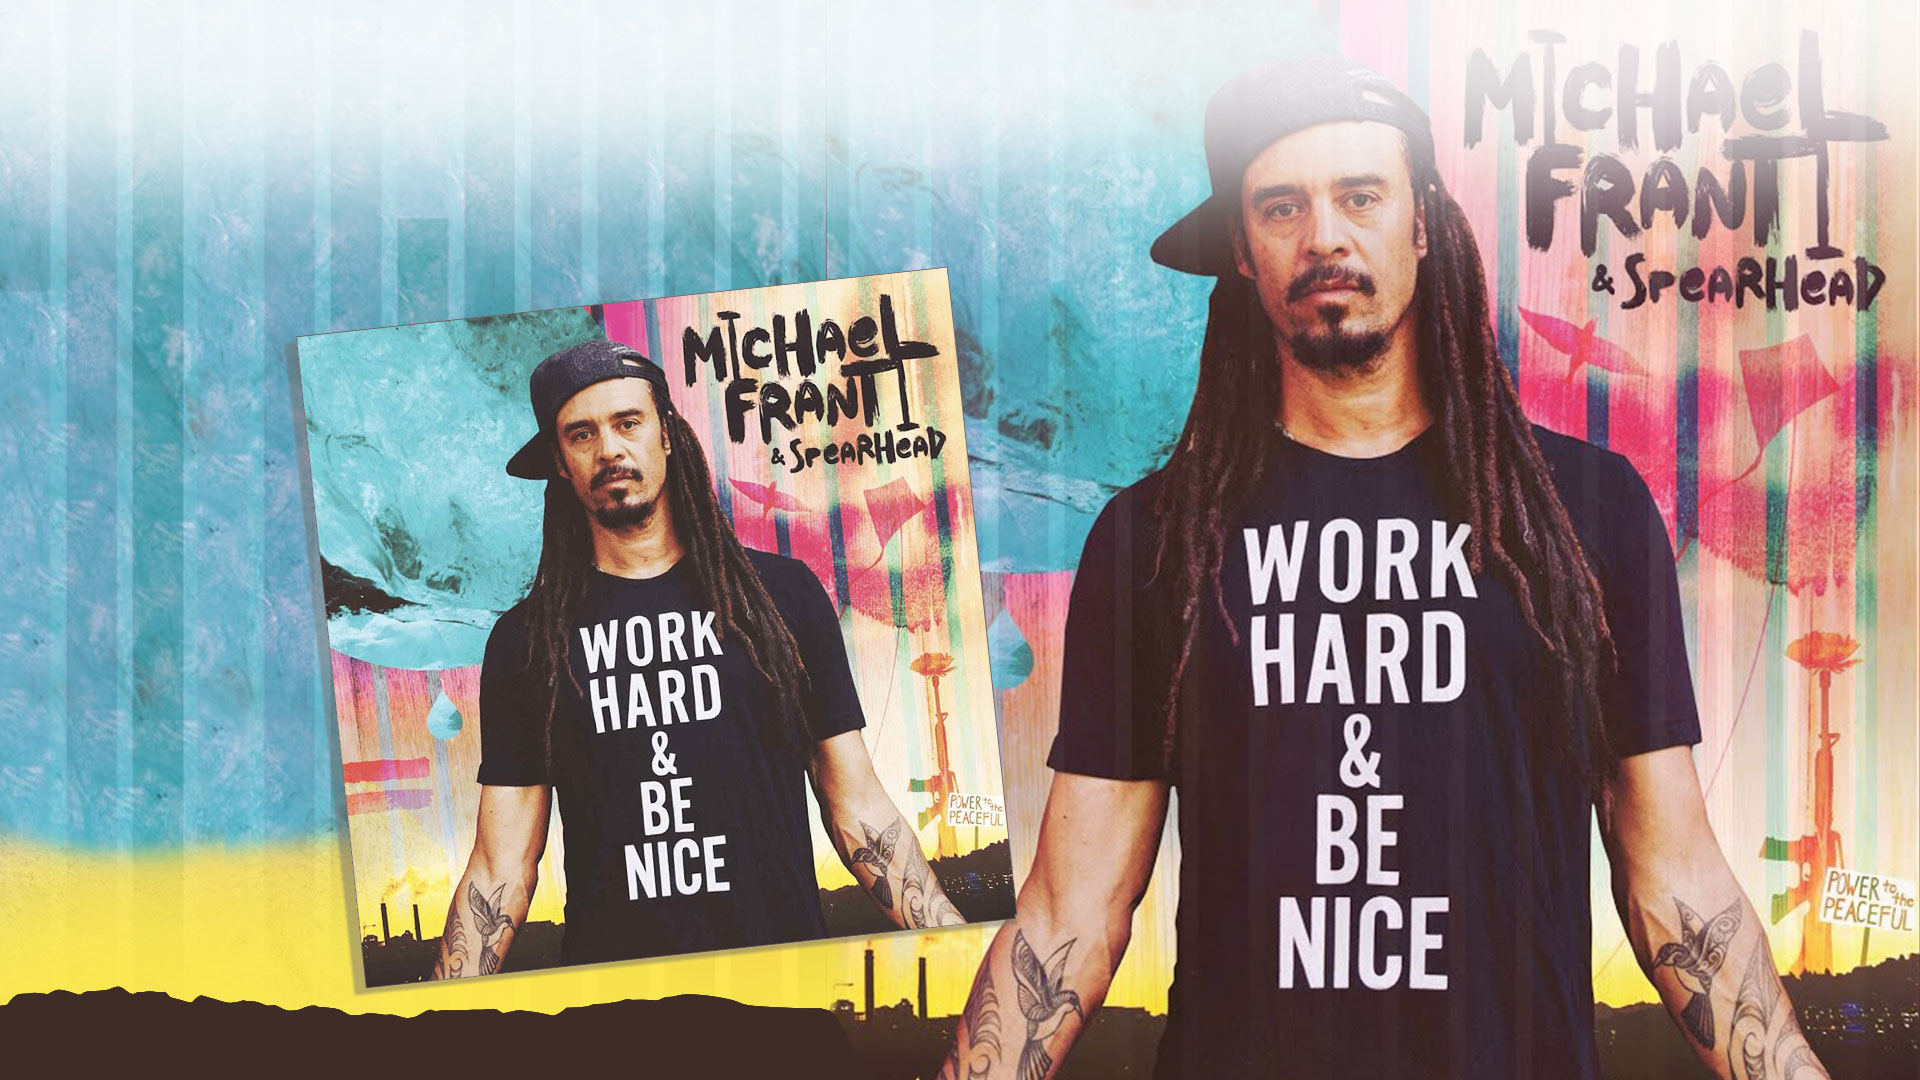 Work Hard & Be Nice The New Release from Michael Franti & Spearhead